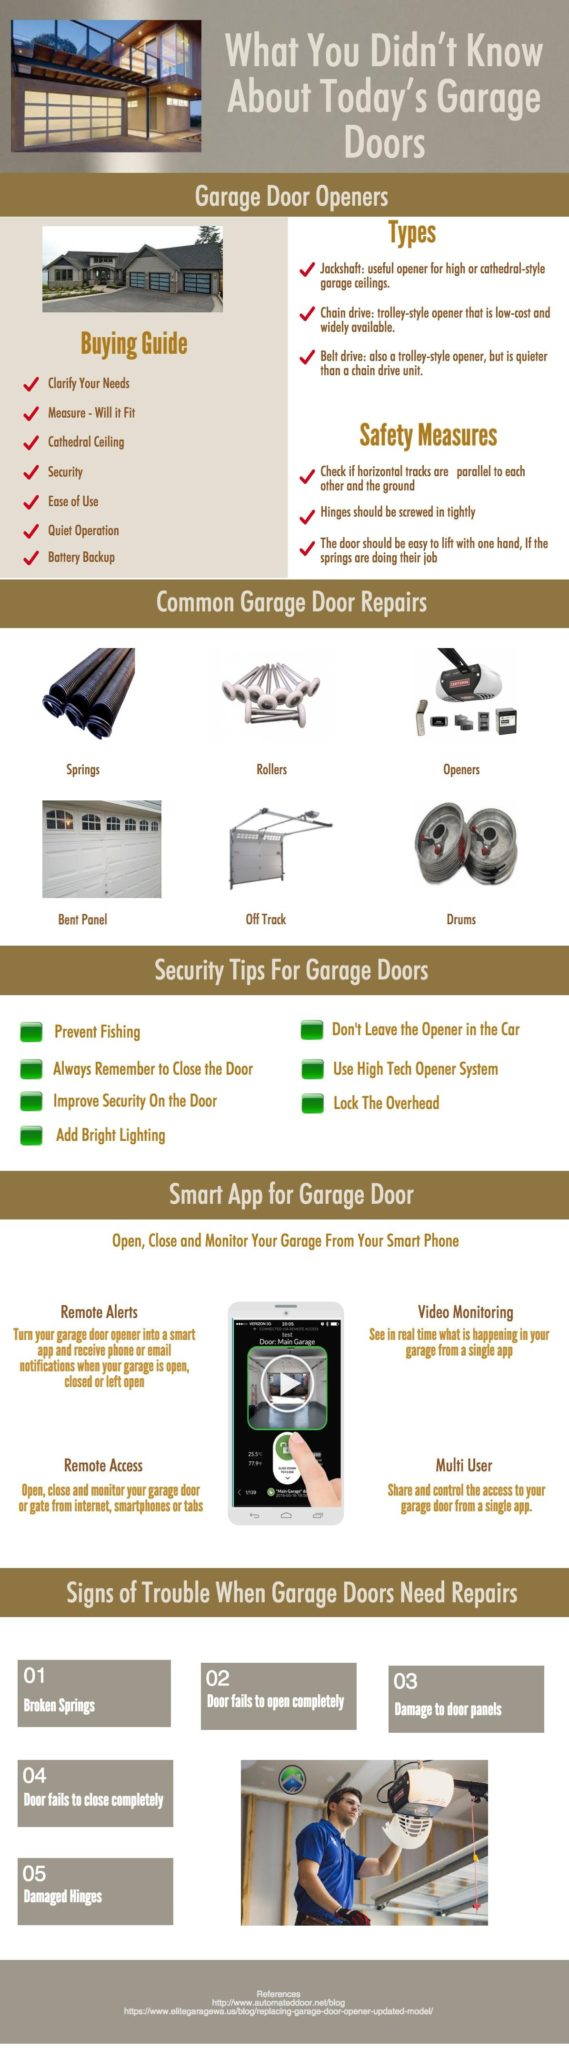 Garage Door Infographic Guide